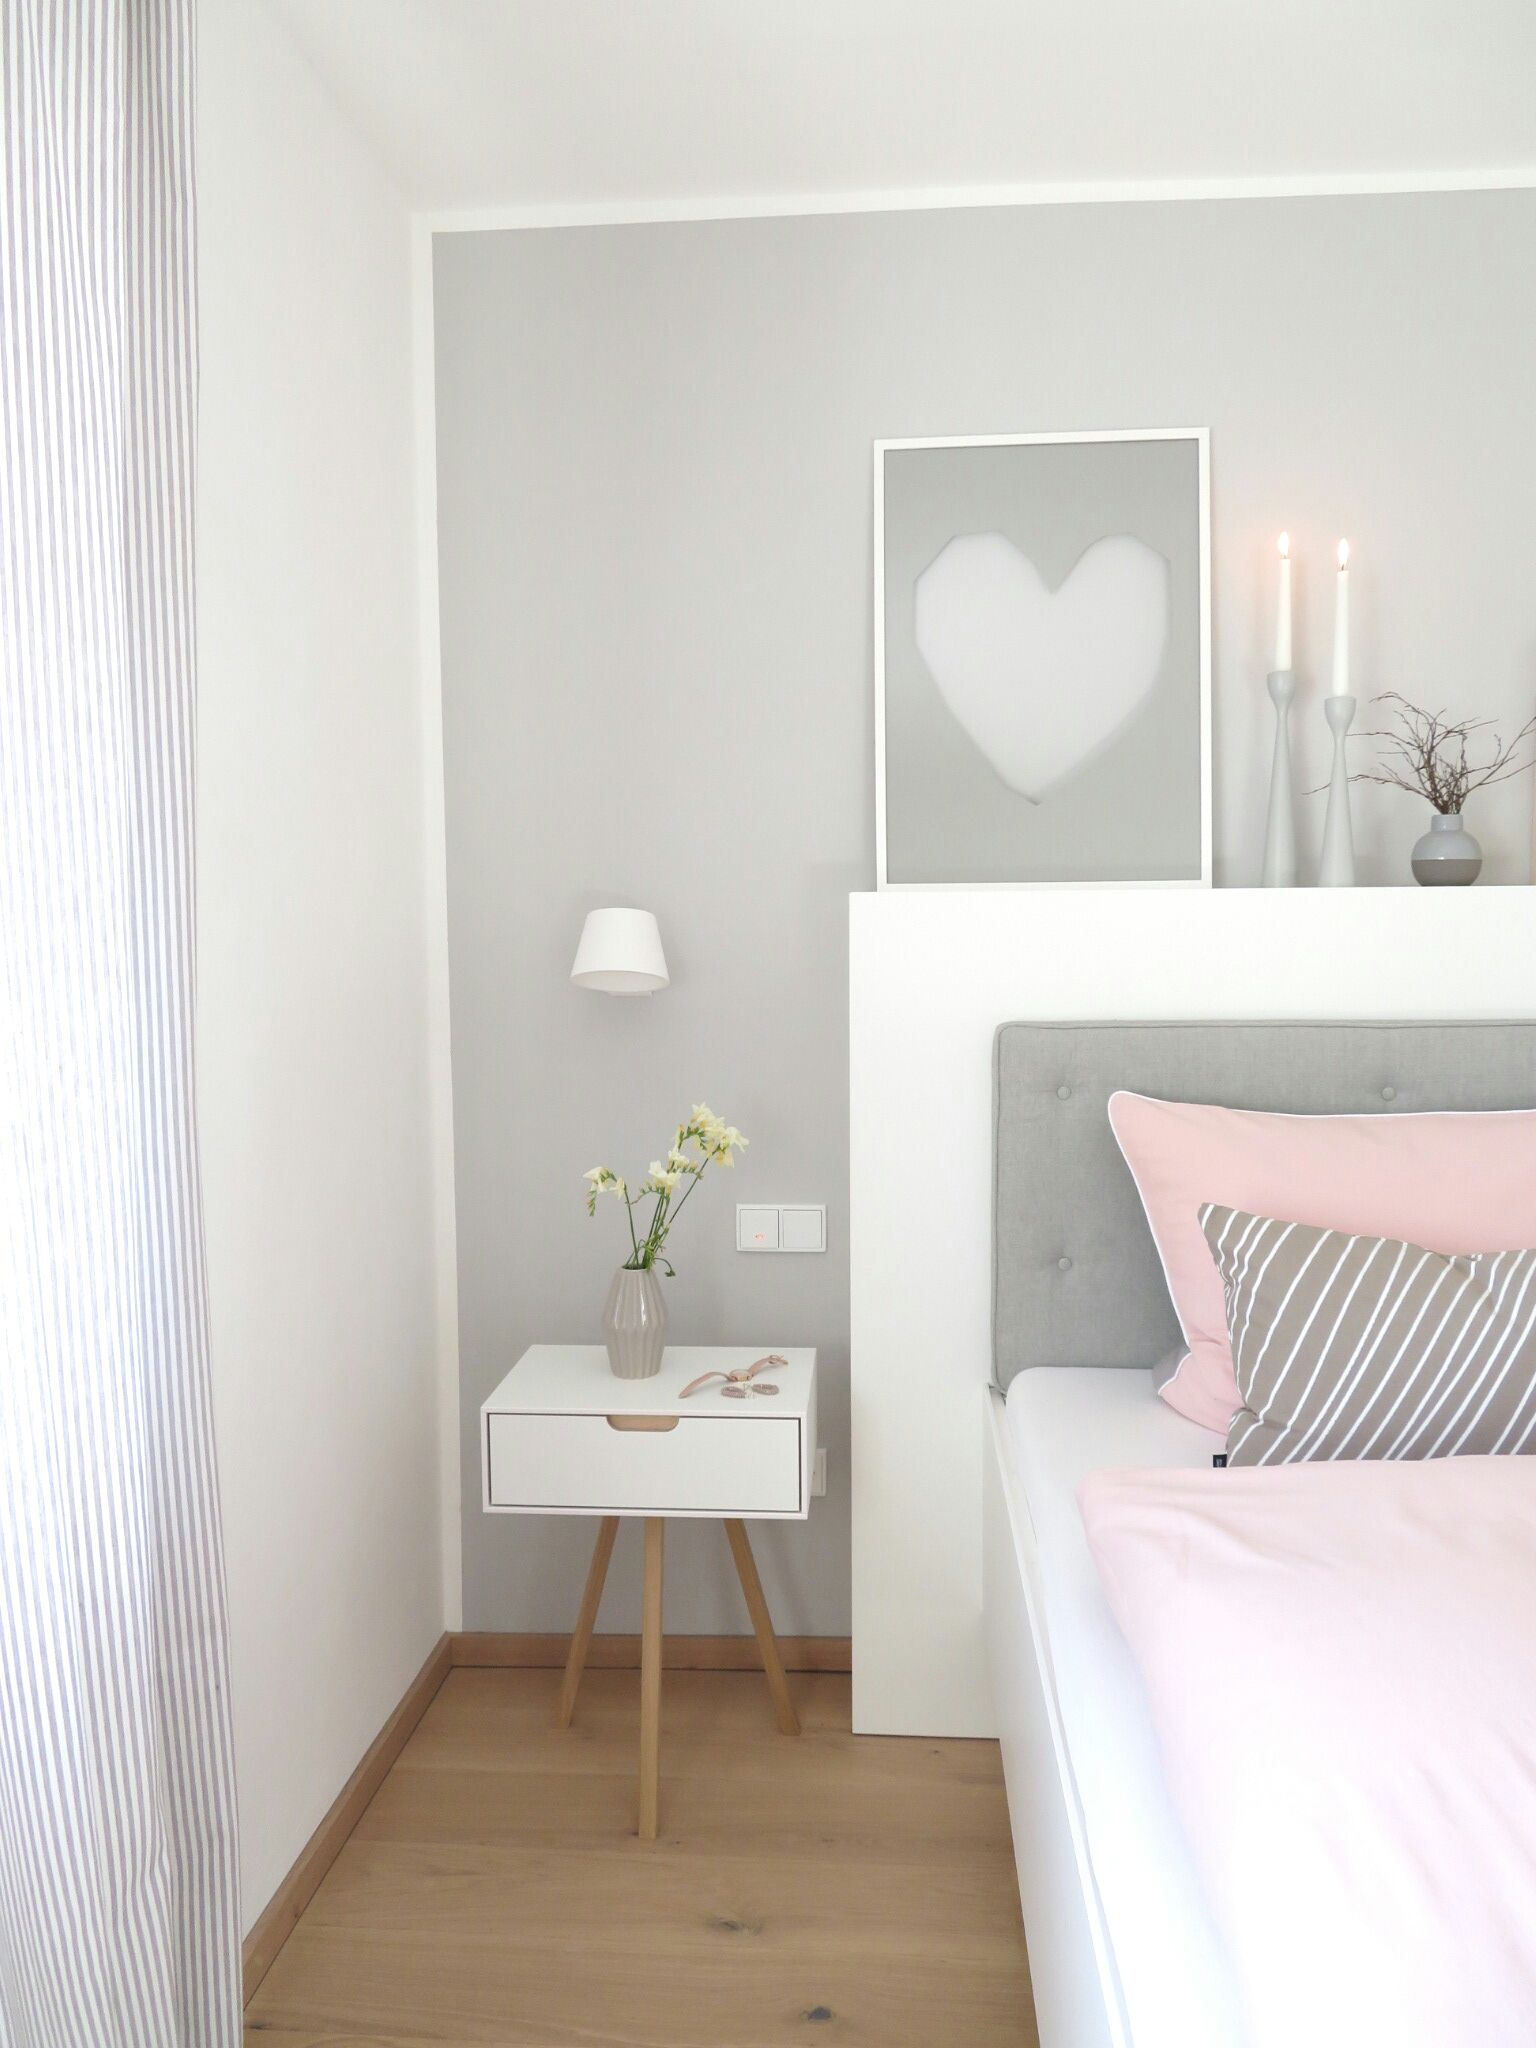 Rosa Schlafzimmer rosa | ideas for the house | pinterest | bedroom, bedroom decor and room